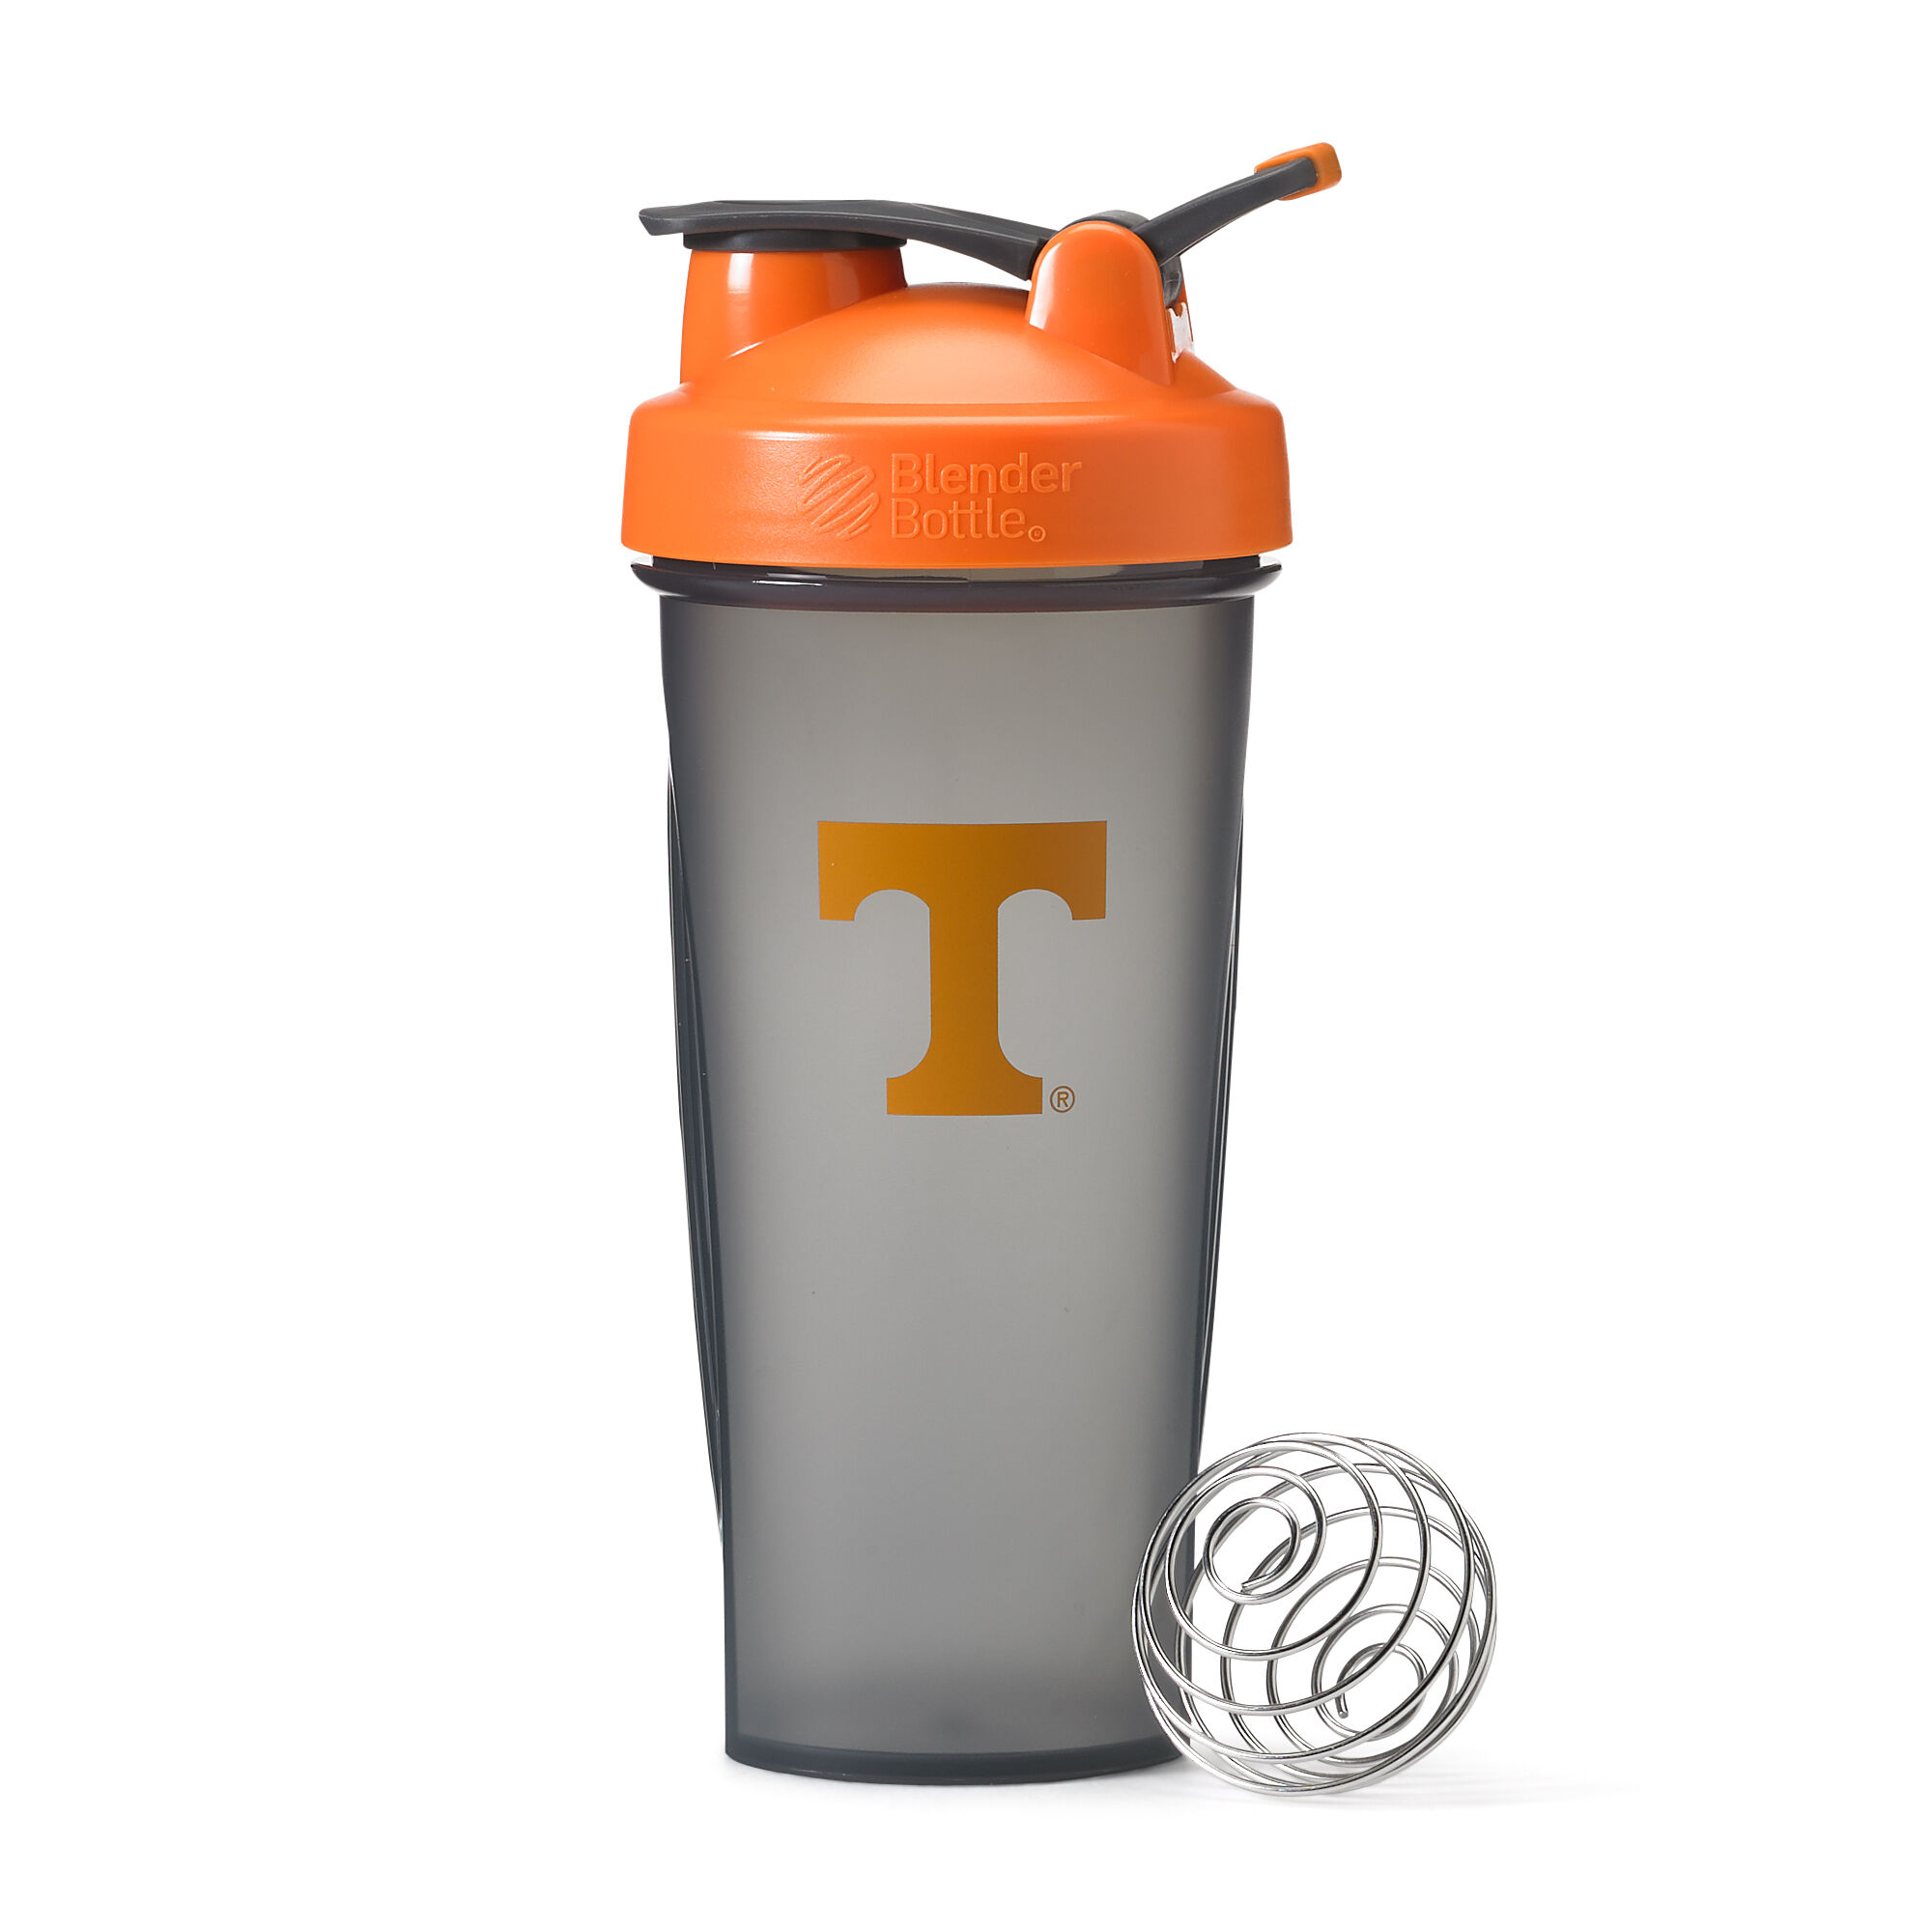 BlenderbottleCollegiate Shaker BottleTennessee 1 Item(s) Blender BottleMixers Shakers And Bottles